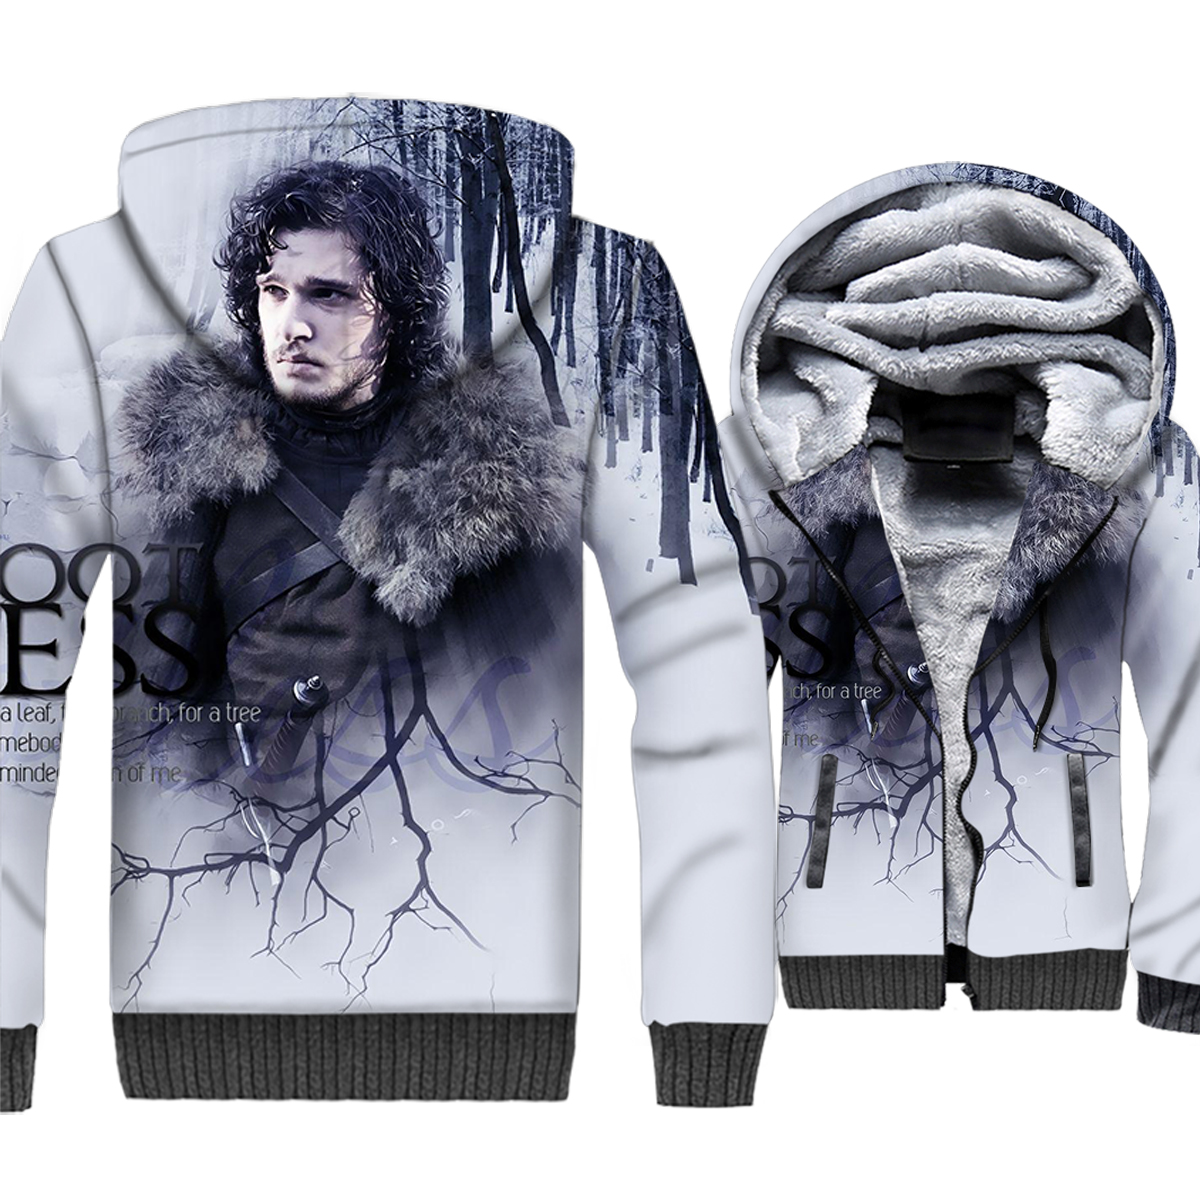 Jon Snow Jacket Men Game of Thrones 3D Hoodies House Stark Sweatshirt 2018 Winter Thick Fleece Warm Zipper Coat Brand Clothing